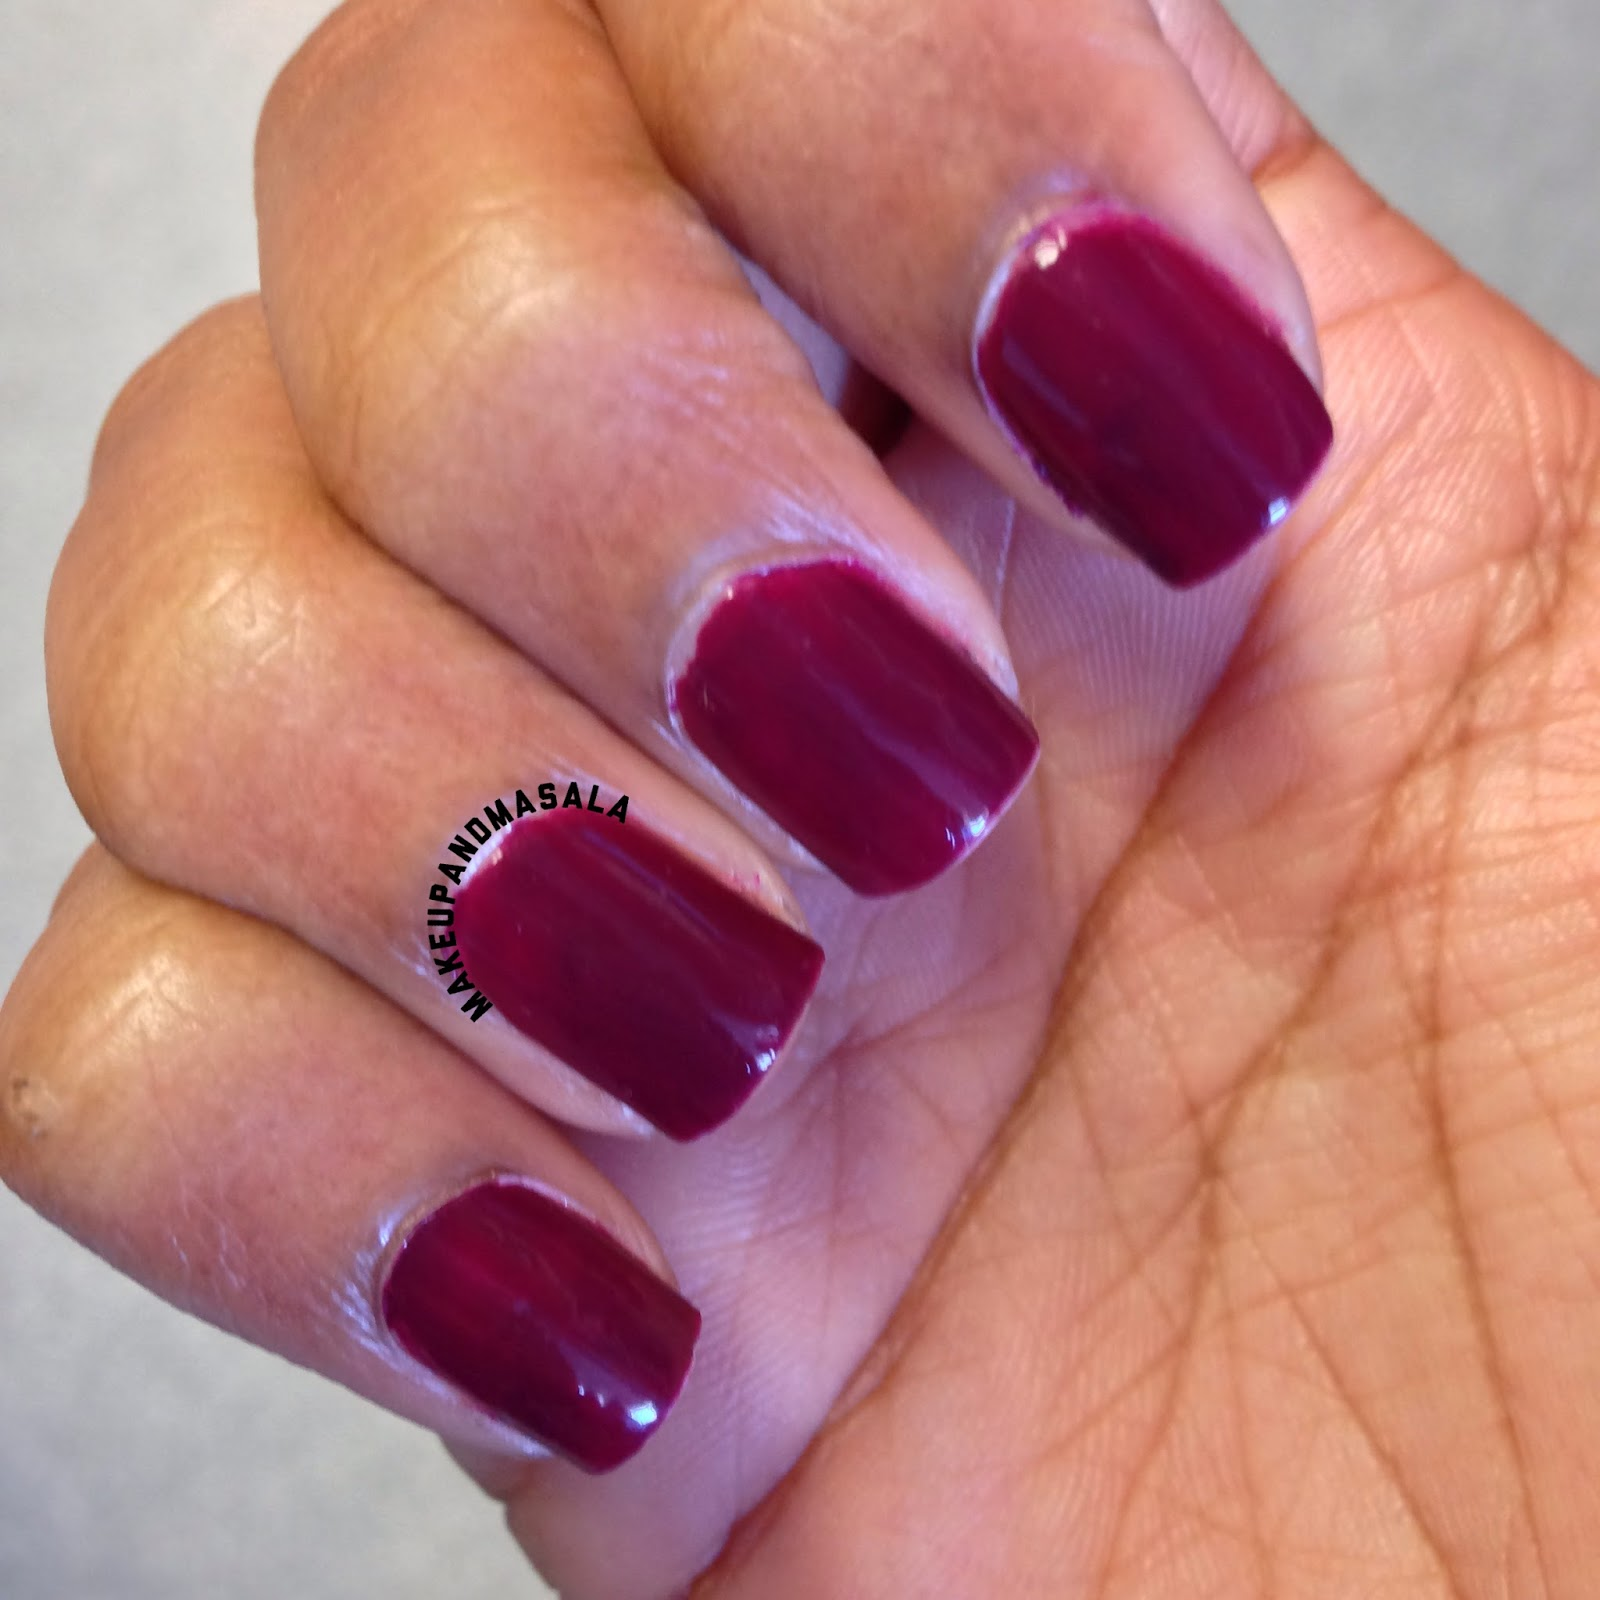 Makeup and Masala: The September Issue: Fall 2015 Nail Polish Color ...